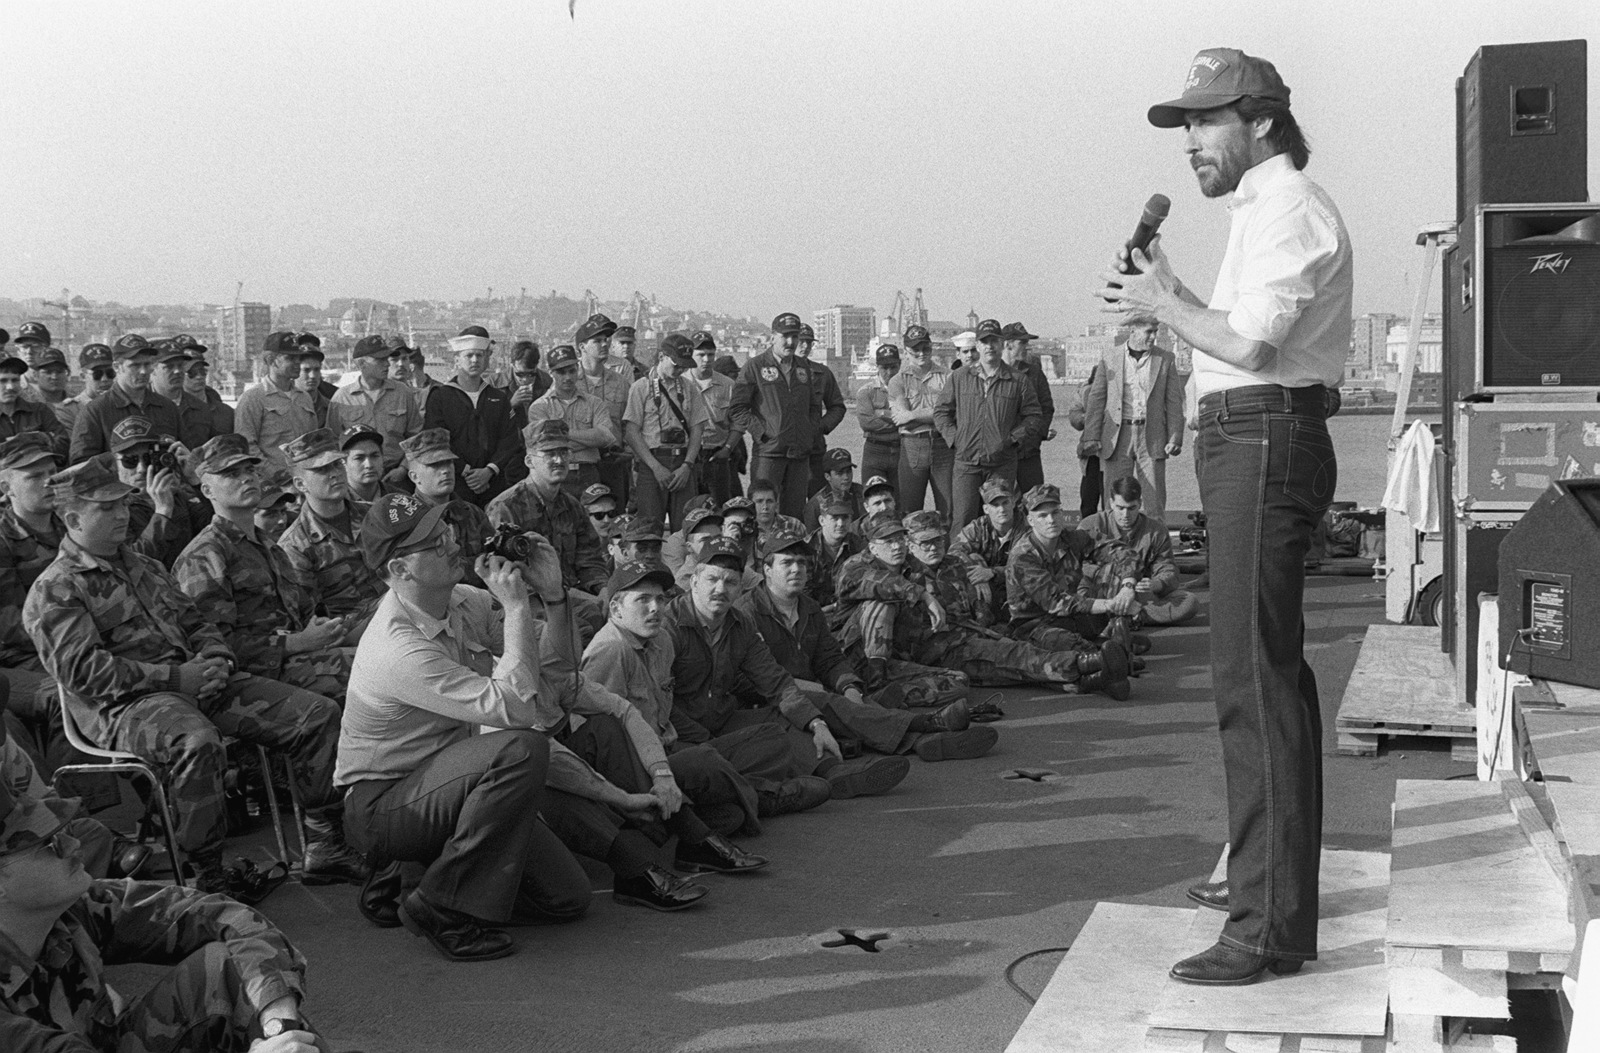 Country music star Lee Greenwood performs for crewmen and